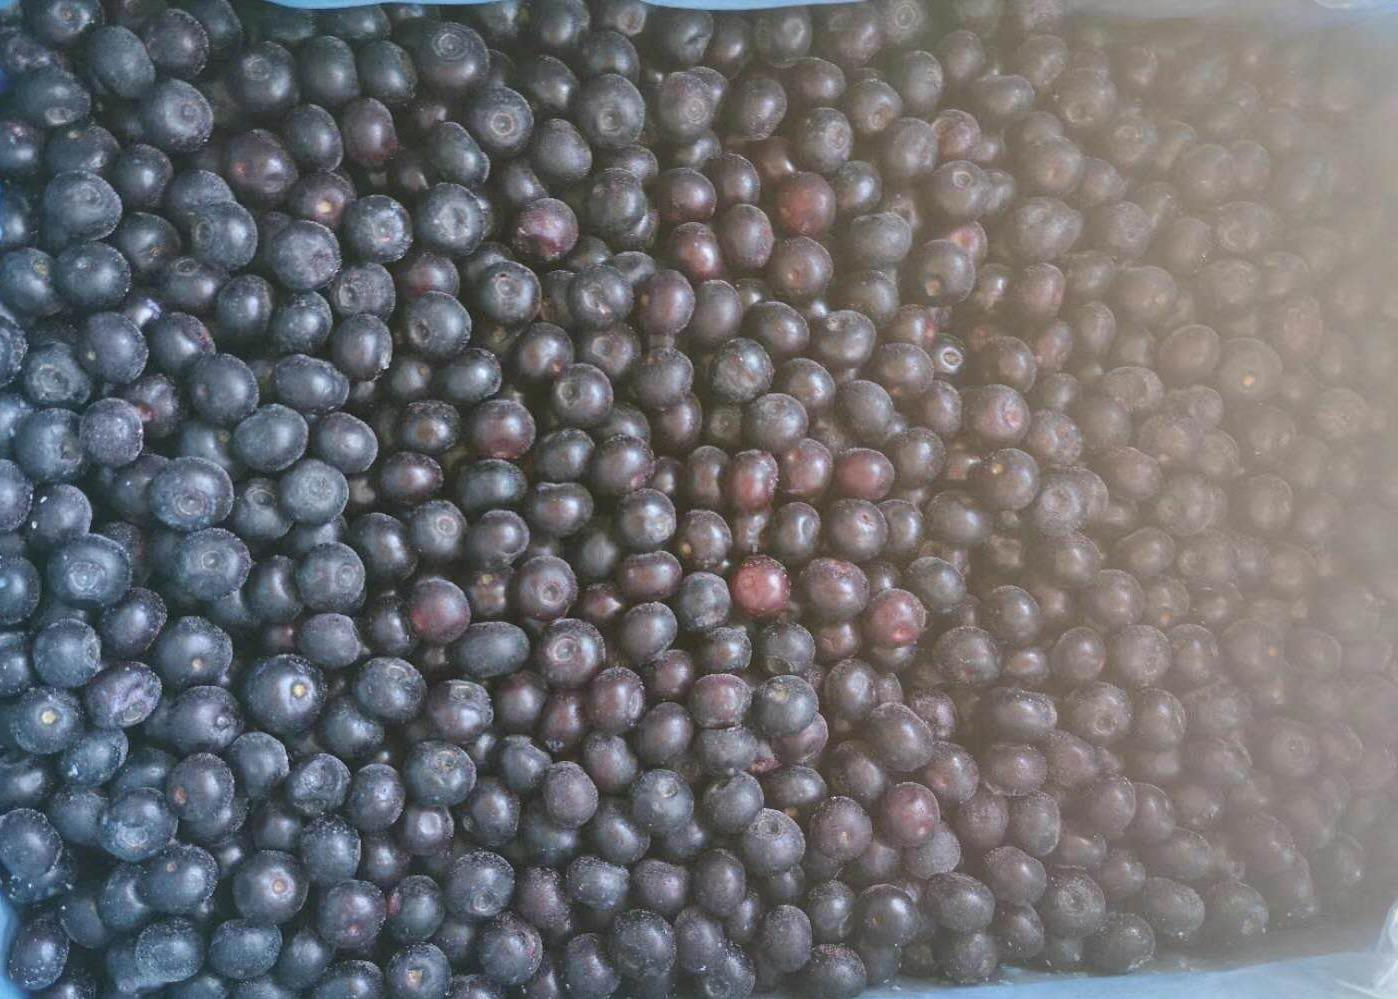 IQF blueberry,IQF Blueberries,Frozen Blueberries,cultivated 1